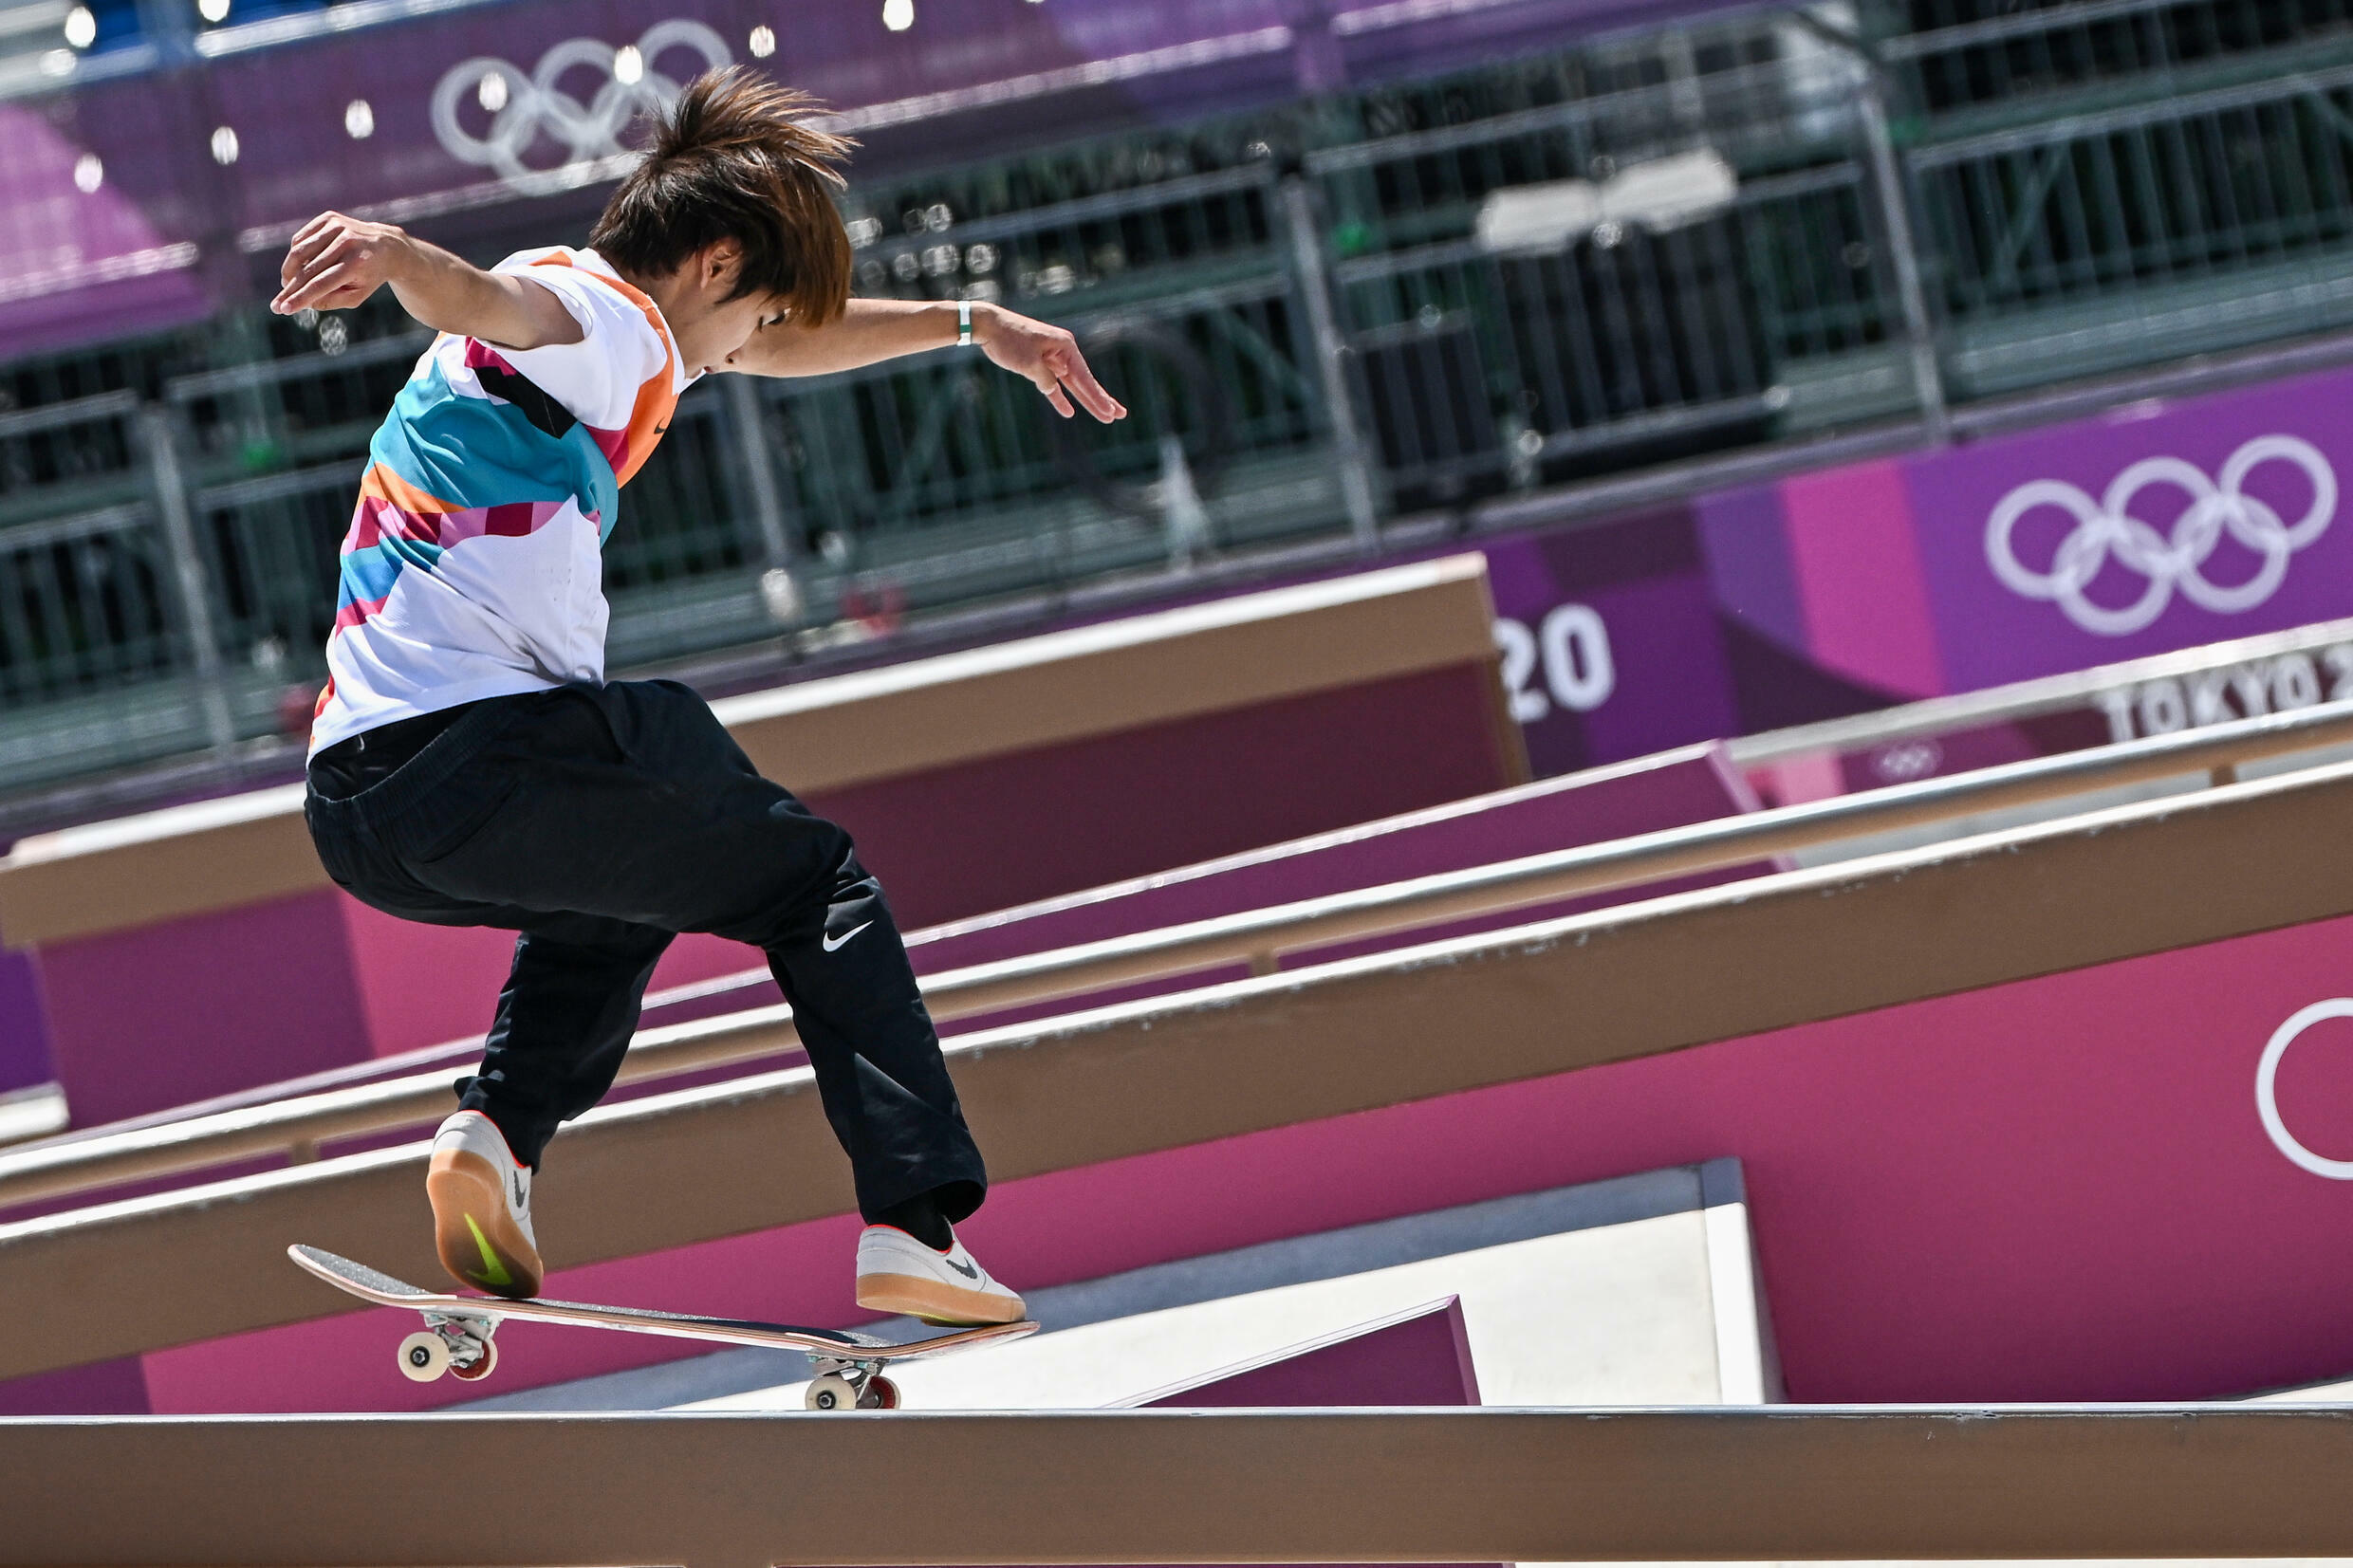 Japan's Yuto Horigome competes in the men's skateboarding street final at the Tokyo 2020 Olympic Games